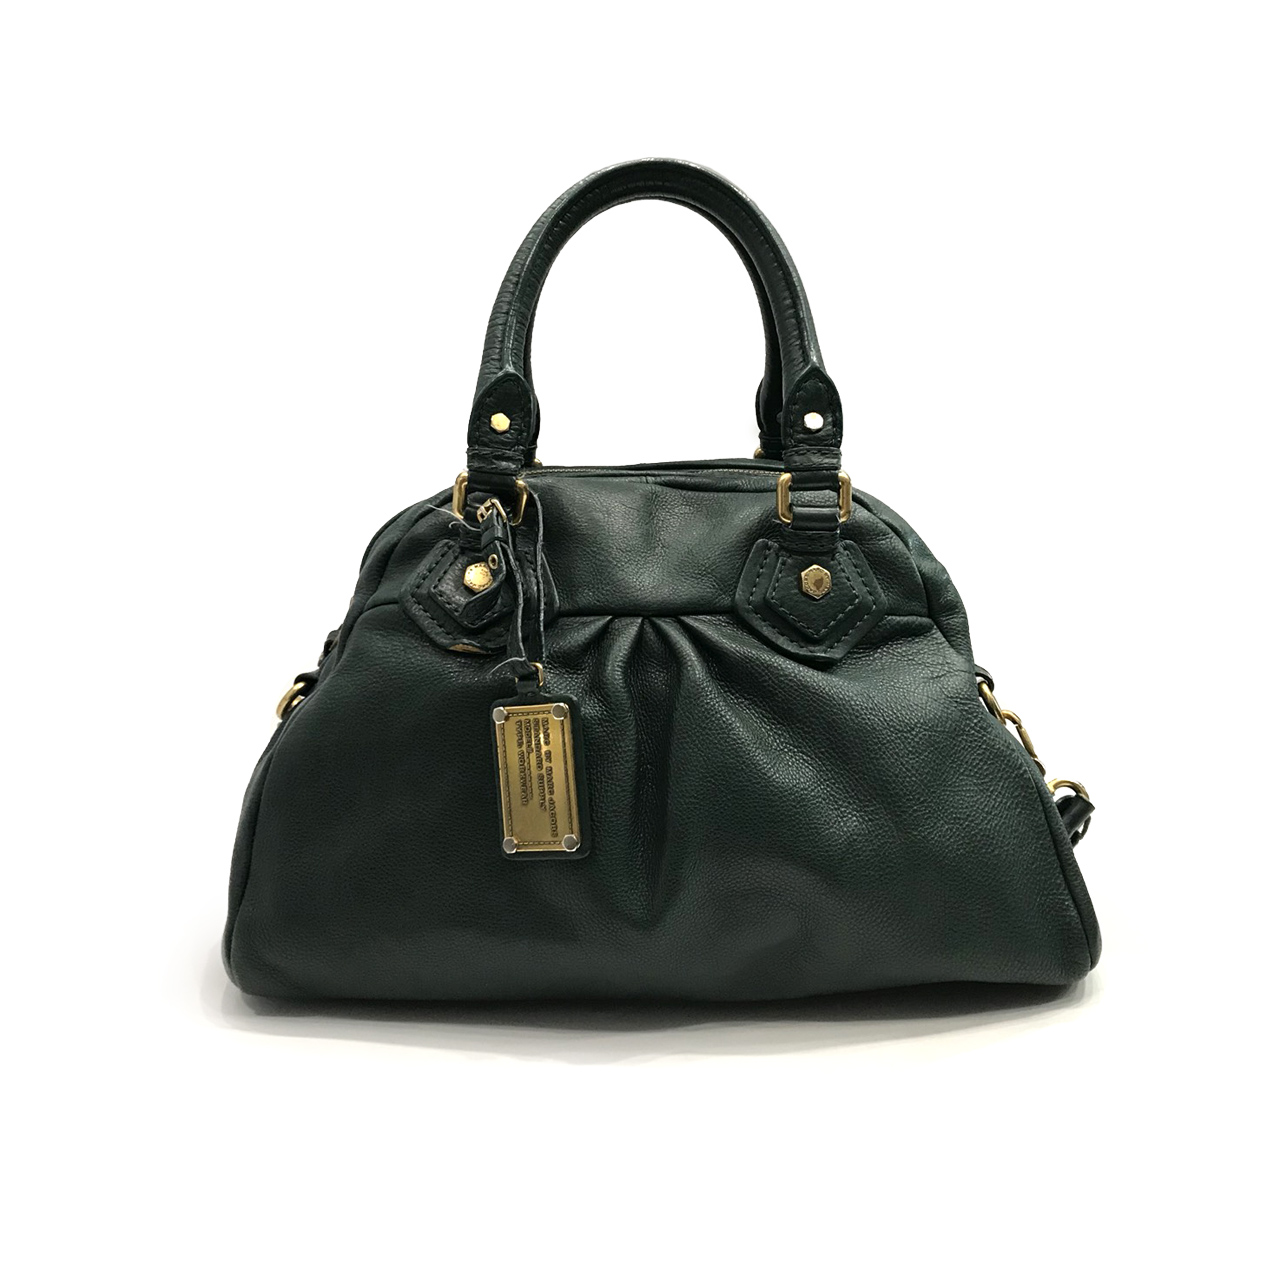 Used Marc By Marc Jacobs Classic Q Handbag in Dark Green Leather GHW